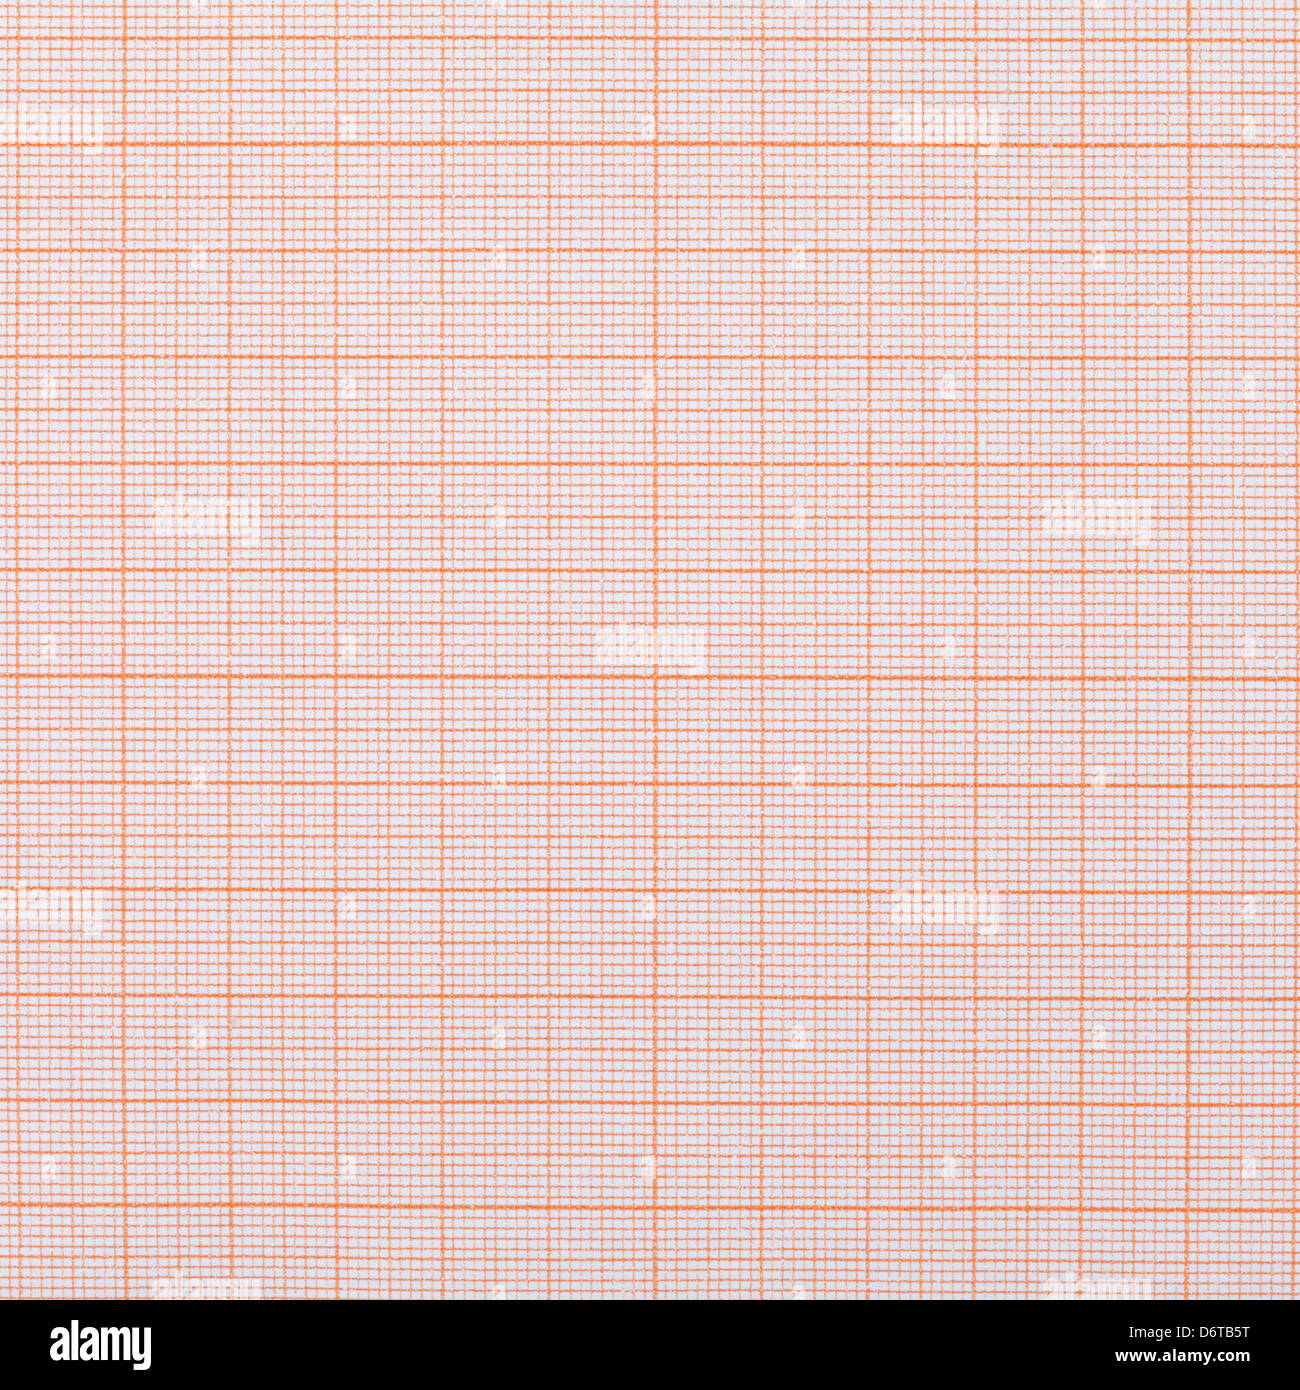 background from graph paper close up - Stock Image